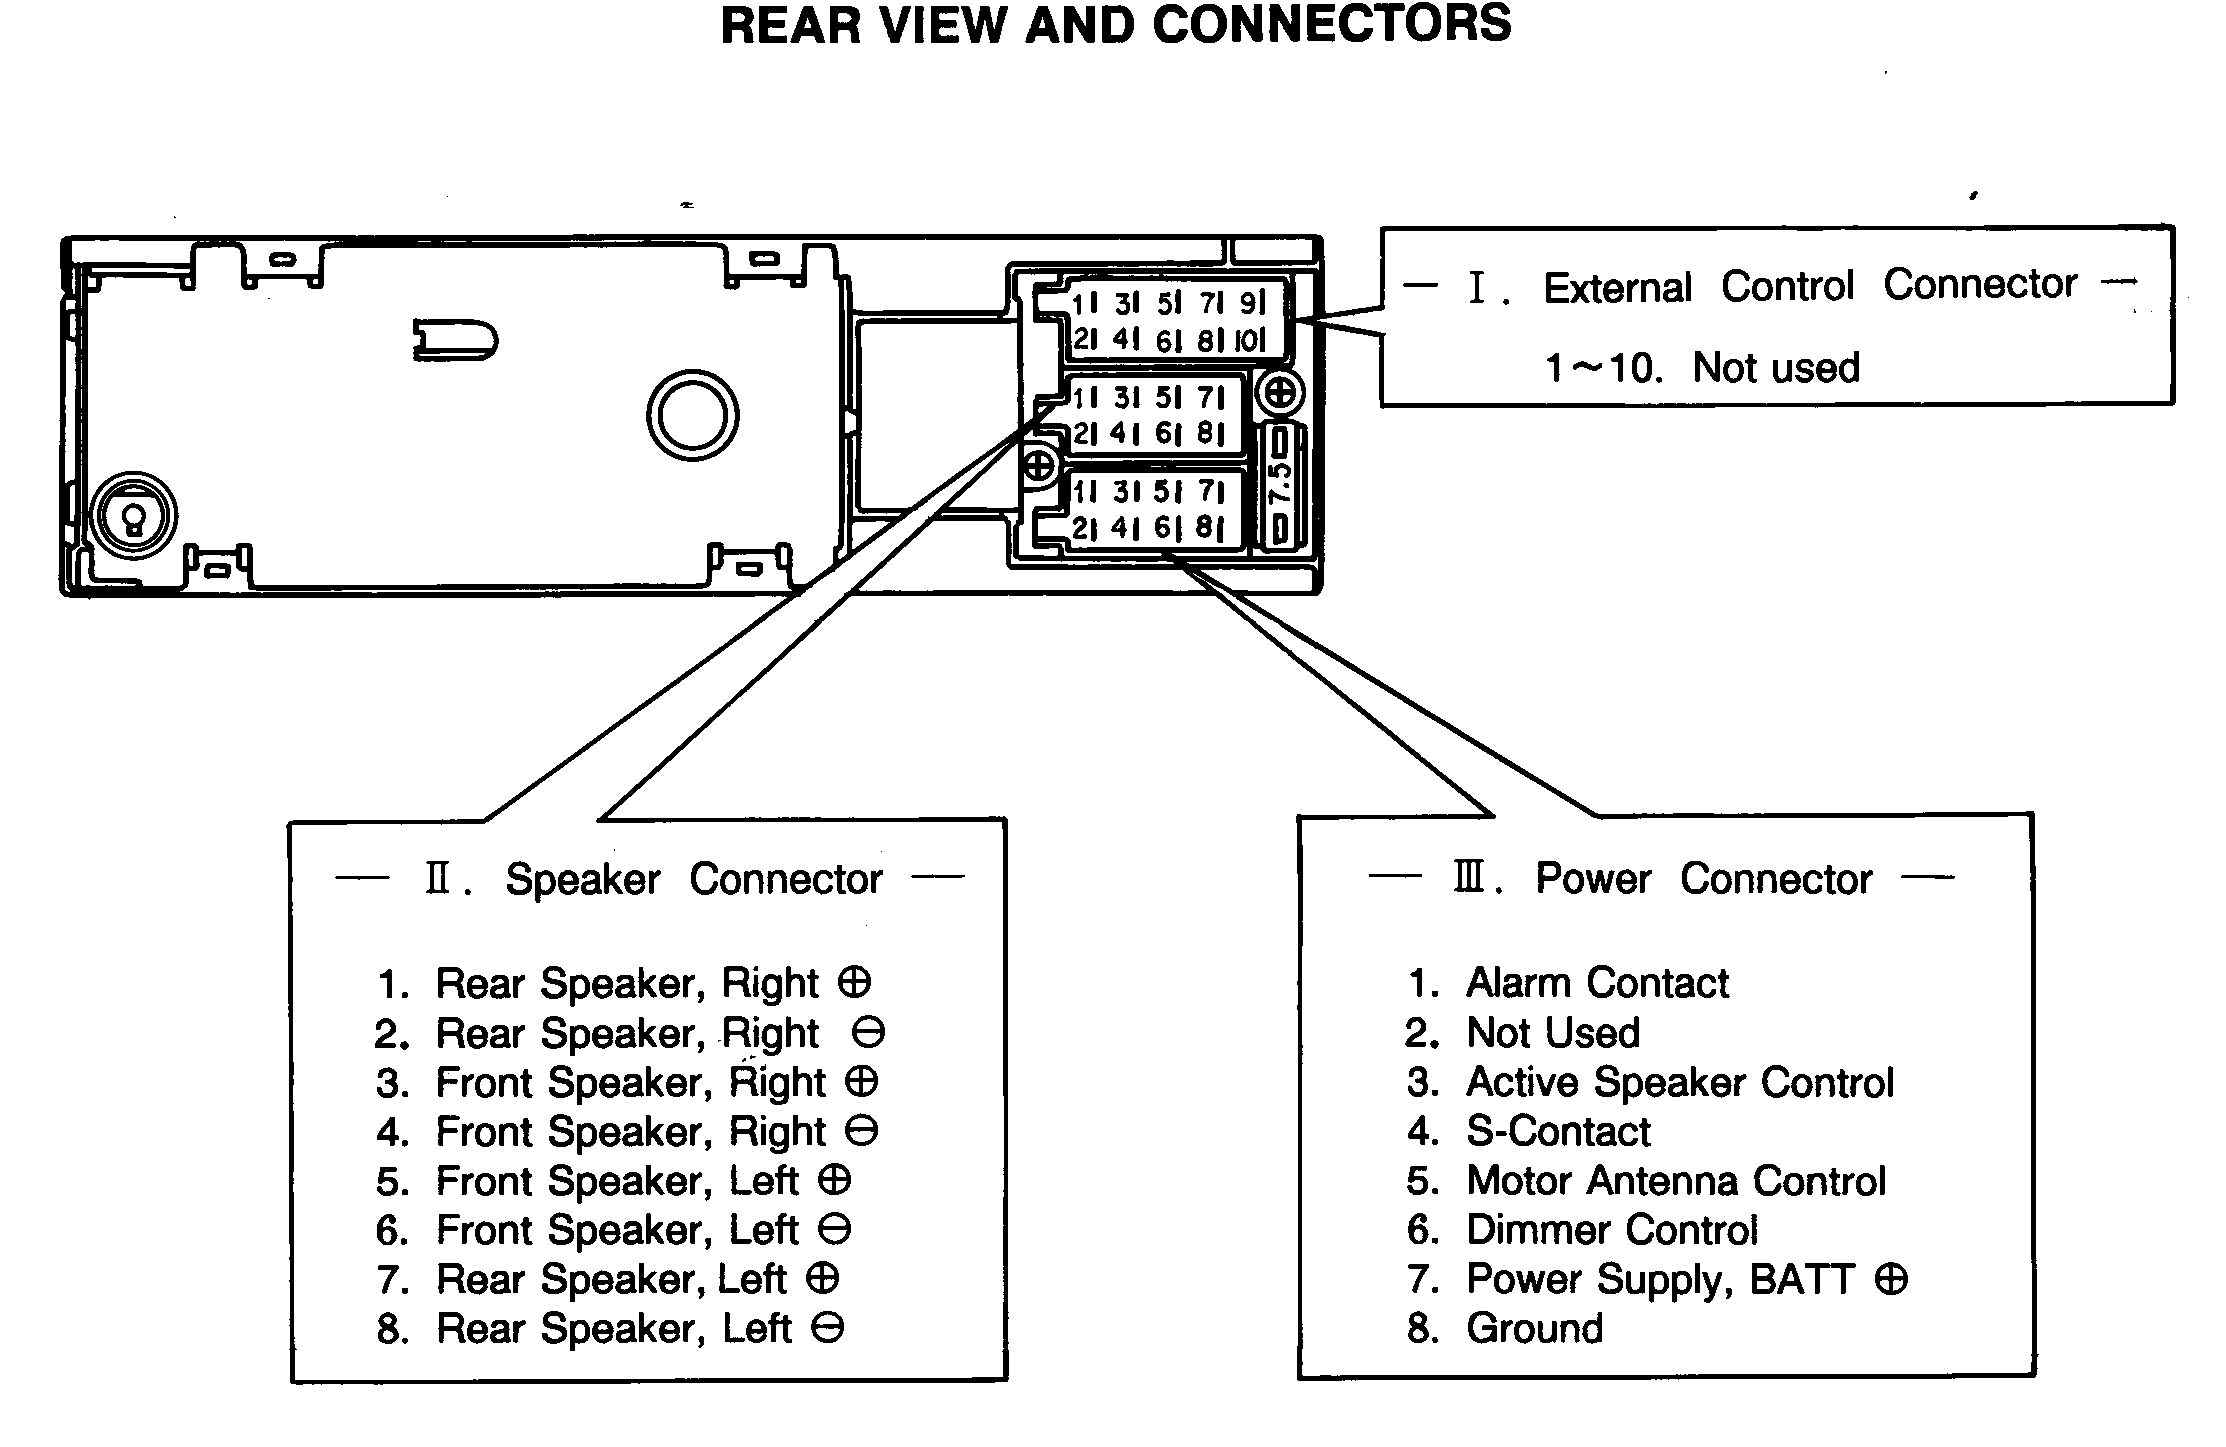 Wiring diagram for speaker connection trusted wiring diagram car audio wire diagram codes volkswagen factory car stereo repair speaker wiring schematics car stereo repair greentooth